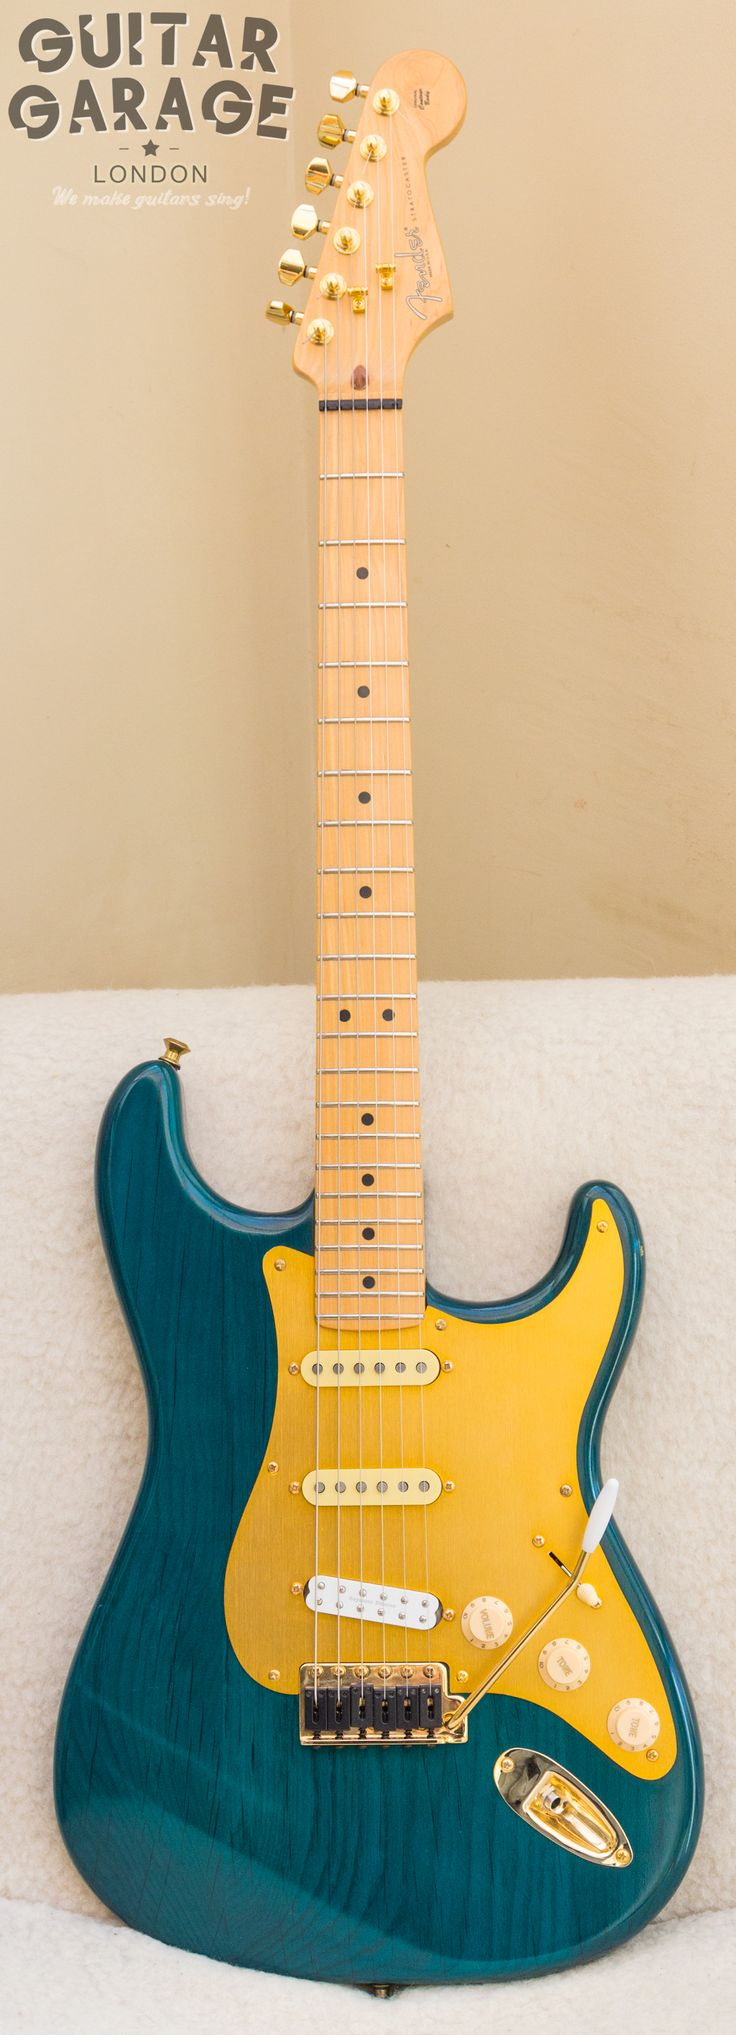 2002 Fender USA Stratocaster Green Nitro Limited Edition. With Graphtech saddles, gold hardware, Texas Specials in neck and mid, JB JR in the bridge, Earvana nut, Locking tuners, Roller string trees, straplocks, silent springs, Callaham Brass Trem Block, shielding